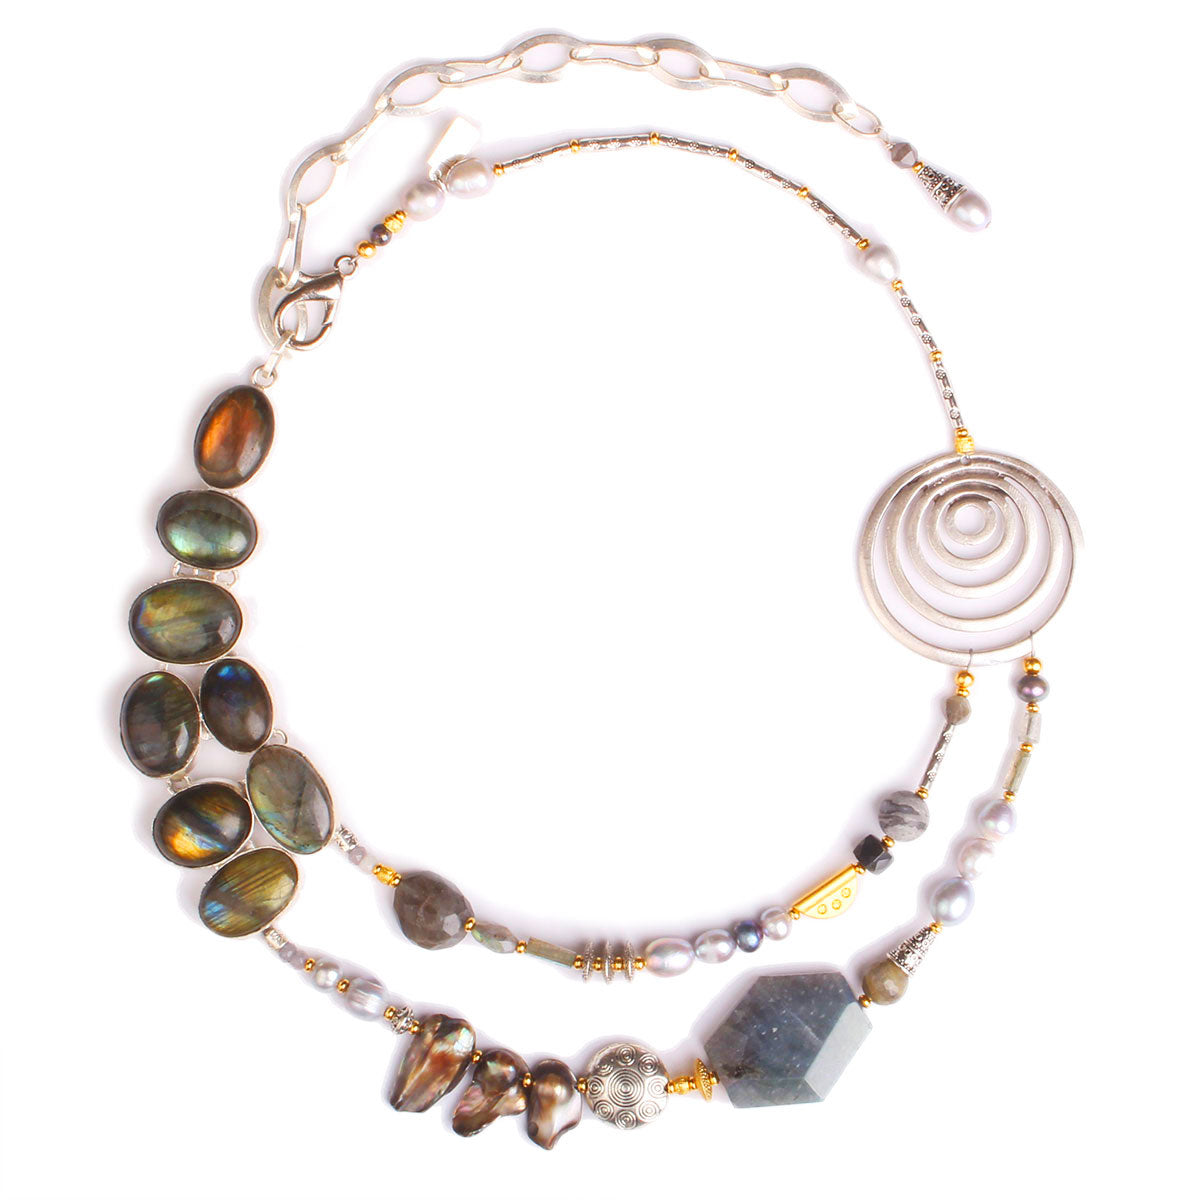 N°524 The Soothing Republic of Liquid Silver Statement Necklace